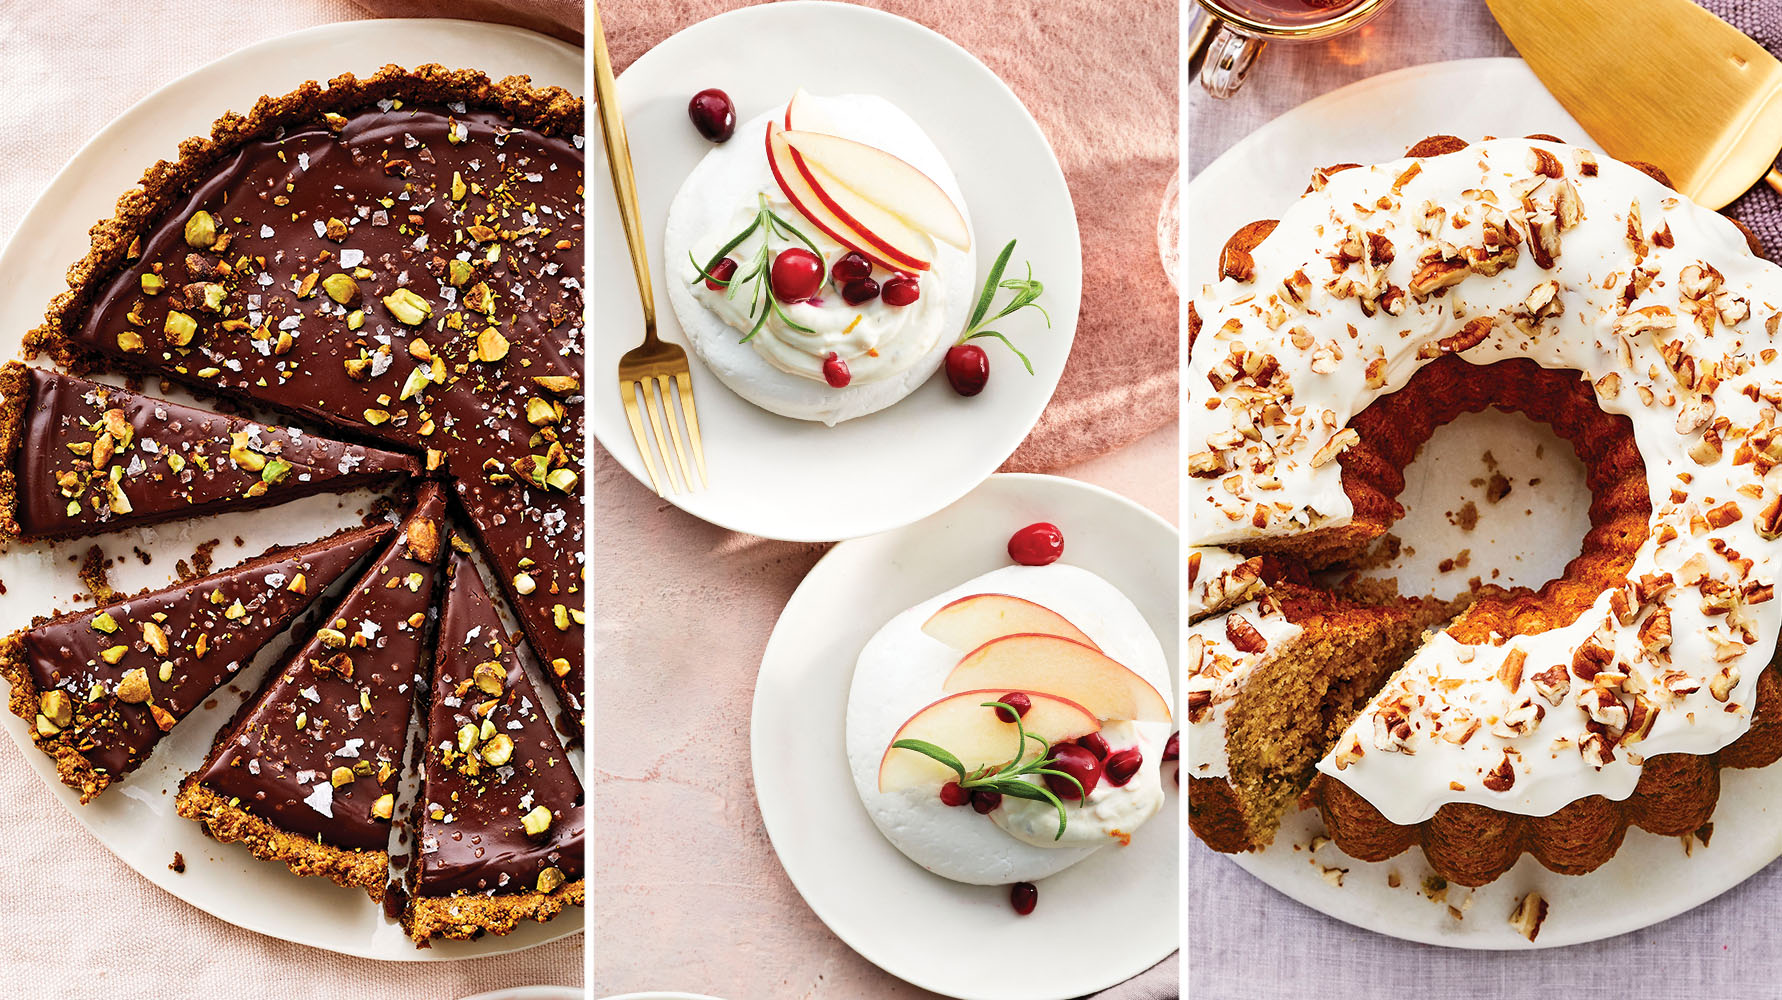 7 Low-Calorie Holiday Desserts